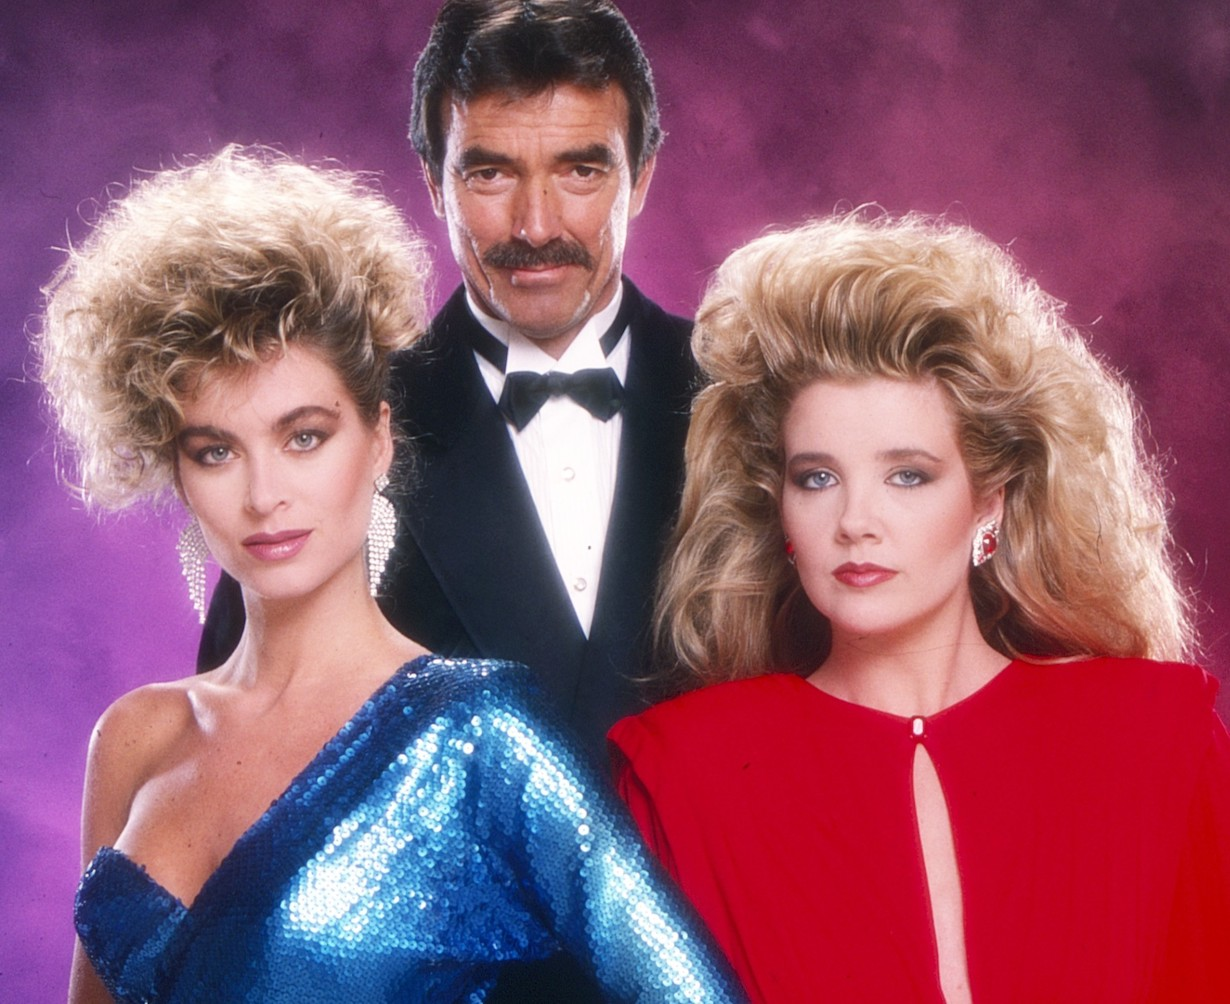 THE YOUNG AND THE RESTLESS, from left: Eileen Davidson, Eric Braeden, Melody Thomas Scott, 1987, 1973-, ph: Bernard Boudreau / TV Guide / © CBS /Courtesy Everett Collection